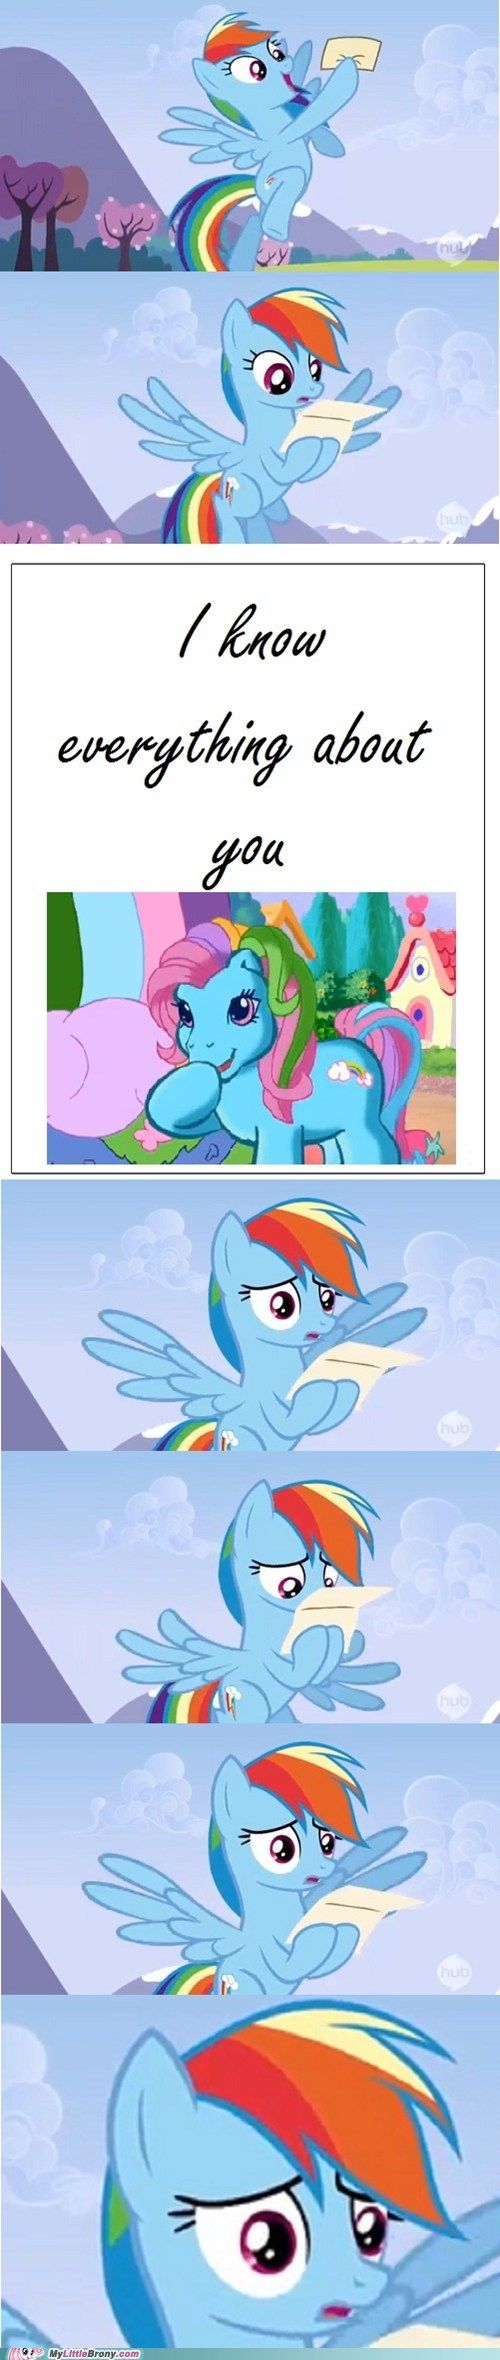 Haha. I remember when Rainbow Dash looked like that. Seriously, the two Rainbow Dashes couldn't be any more different.